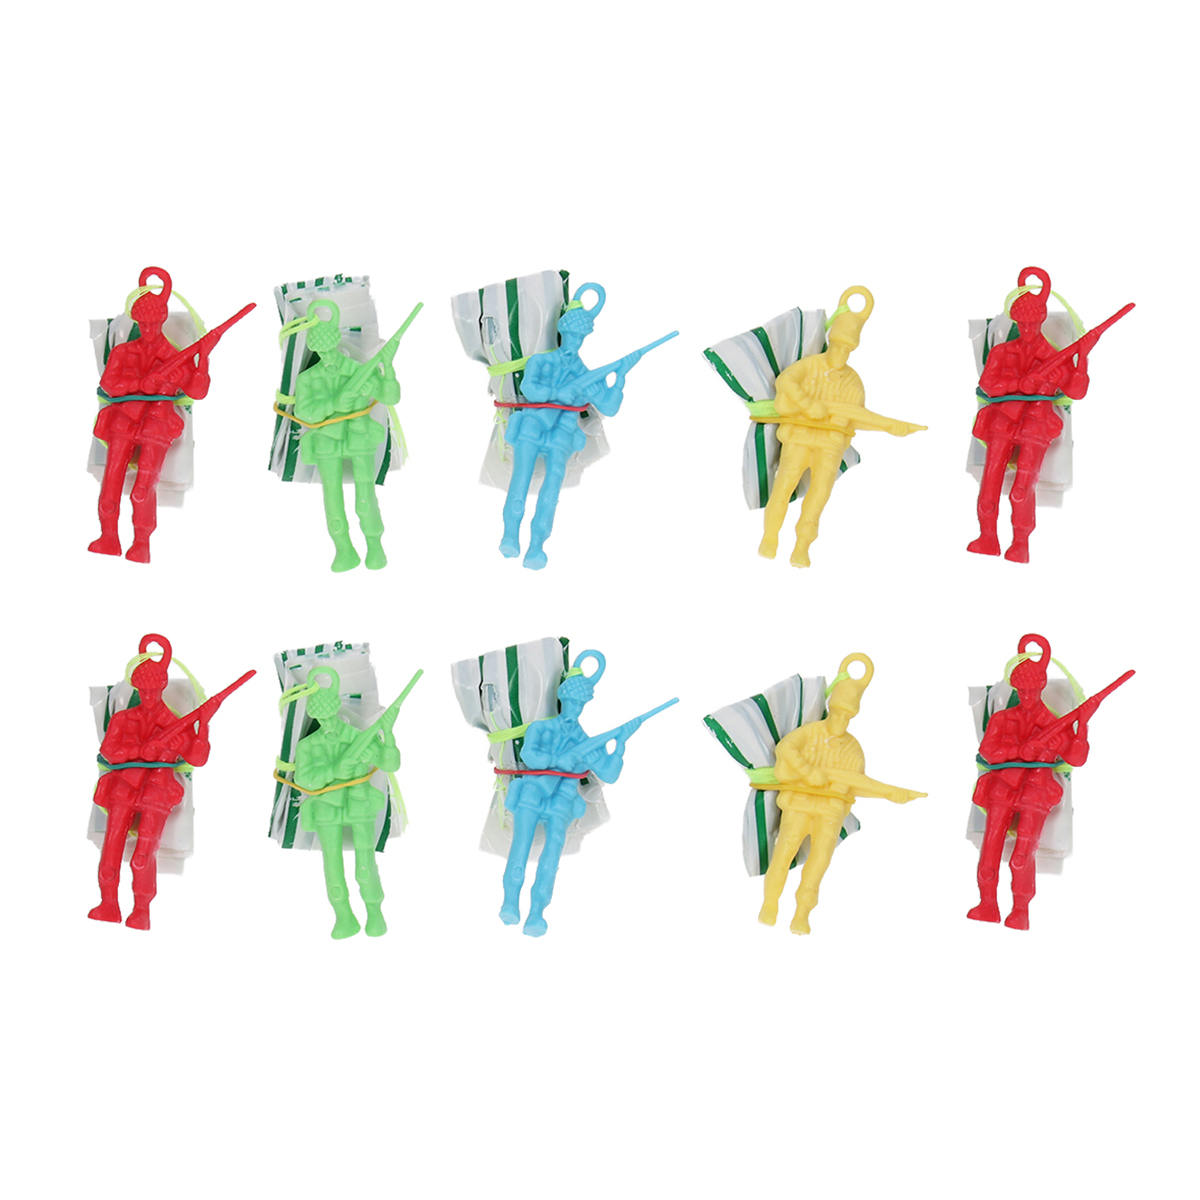 10Pcs Mini Hand Throwing Parachute Toy Educational Parachute Men With Figure Soldier Kids Outdoor Games Toy Random Color